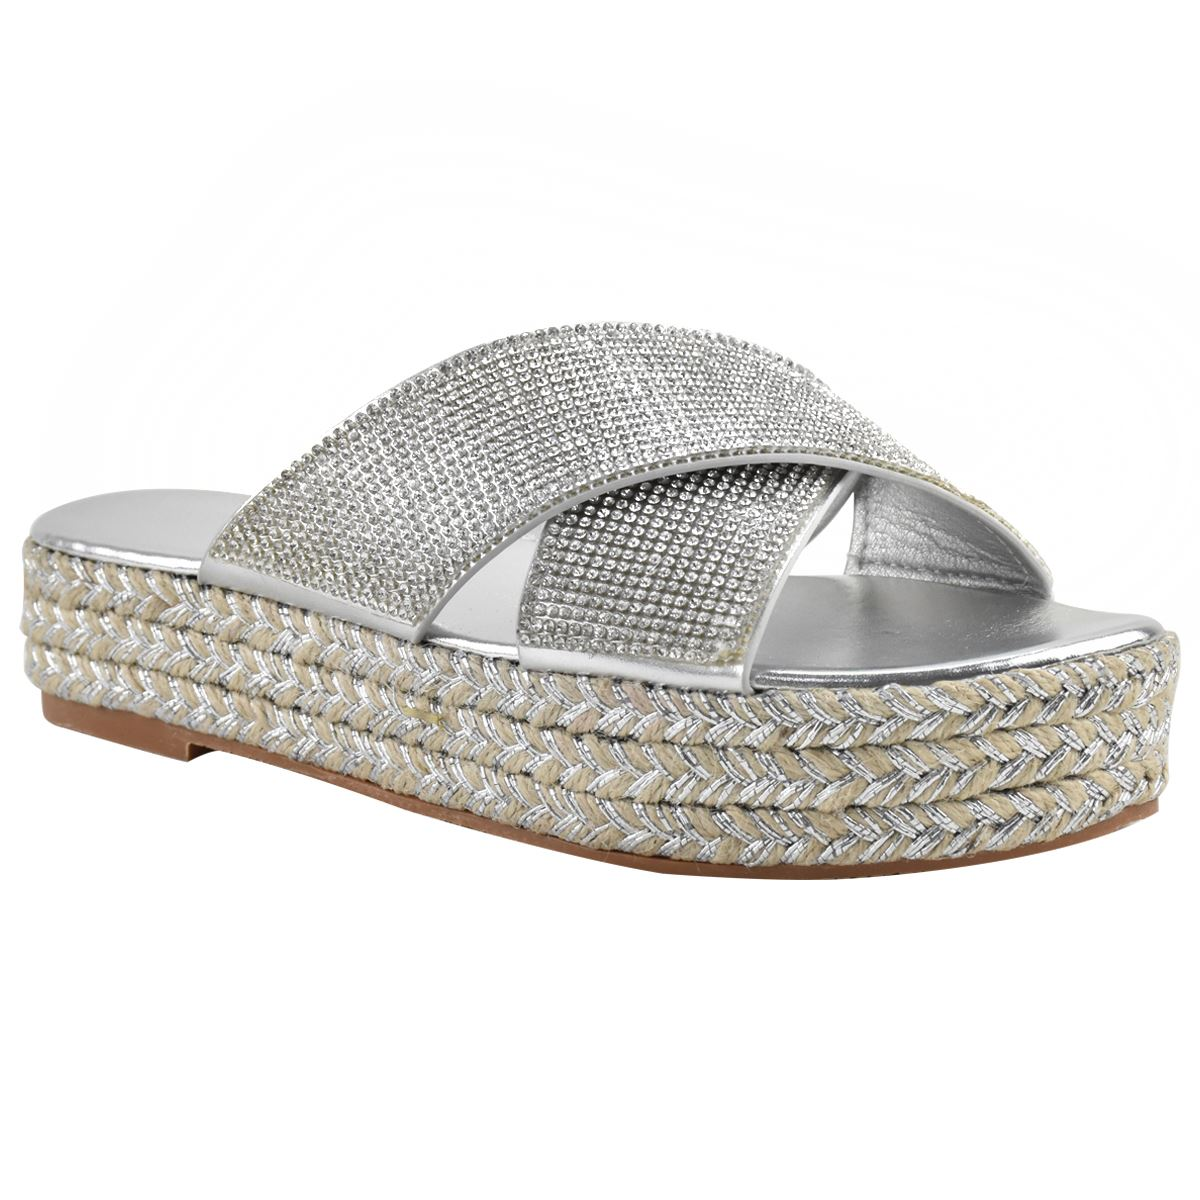 Womens-Diamante-Slip-On-Sandals-Flatforms-Sparkly-Platform-Summer-Size-UK thumbnail 13